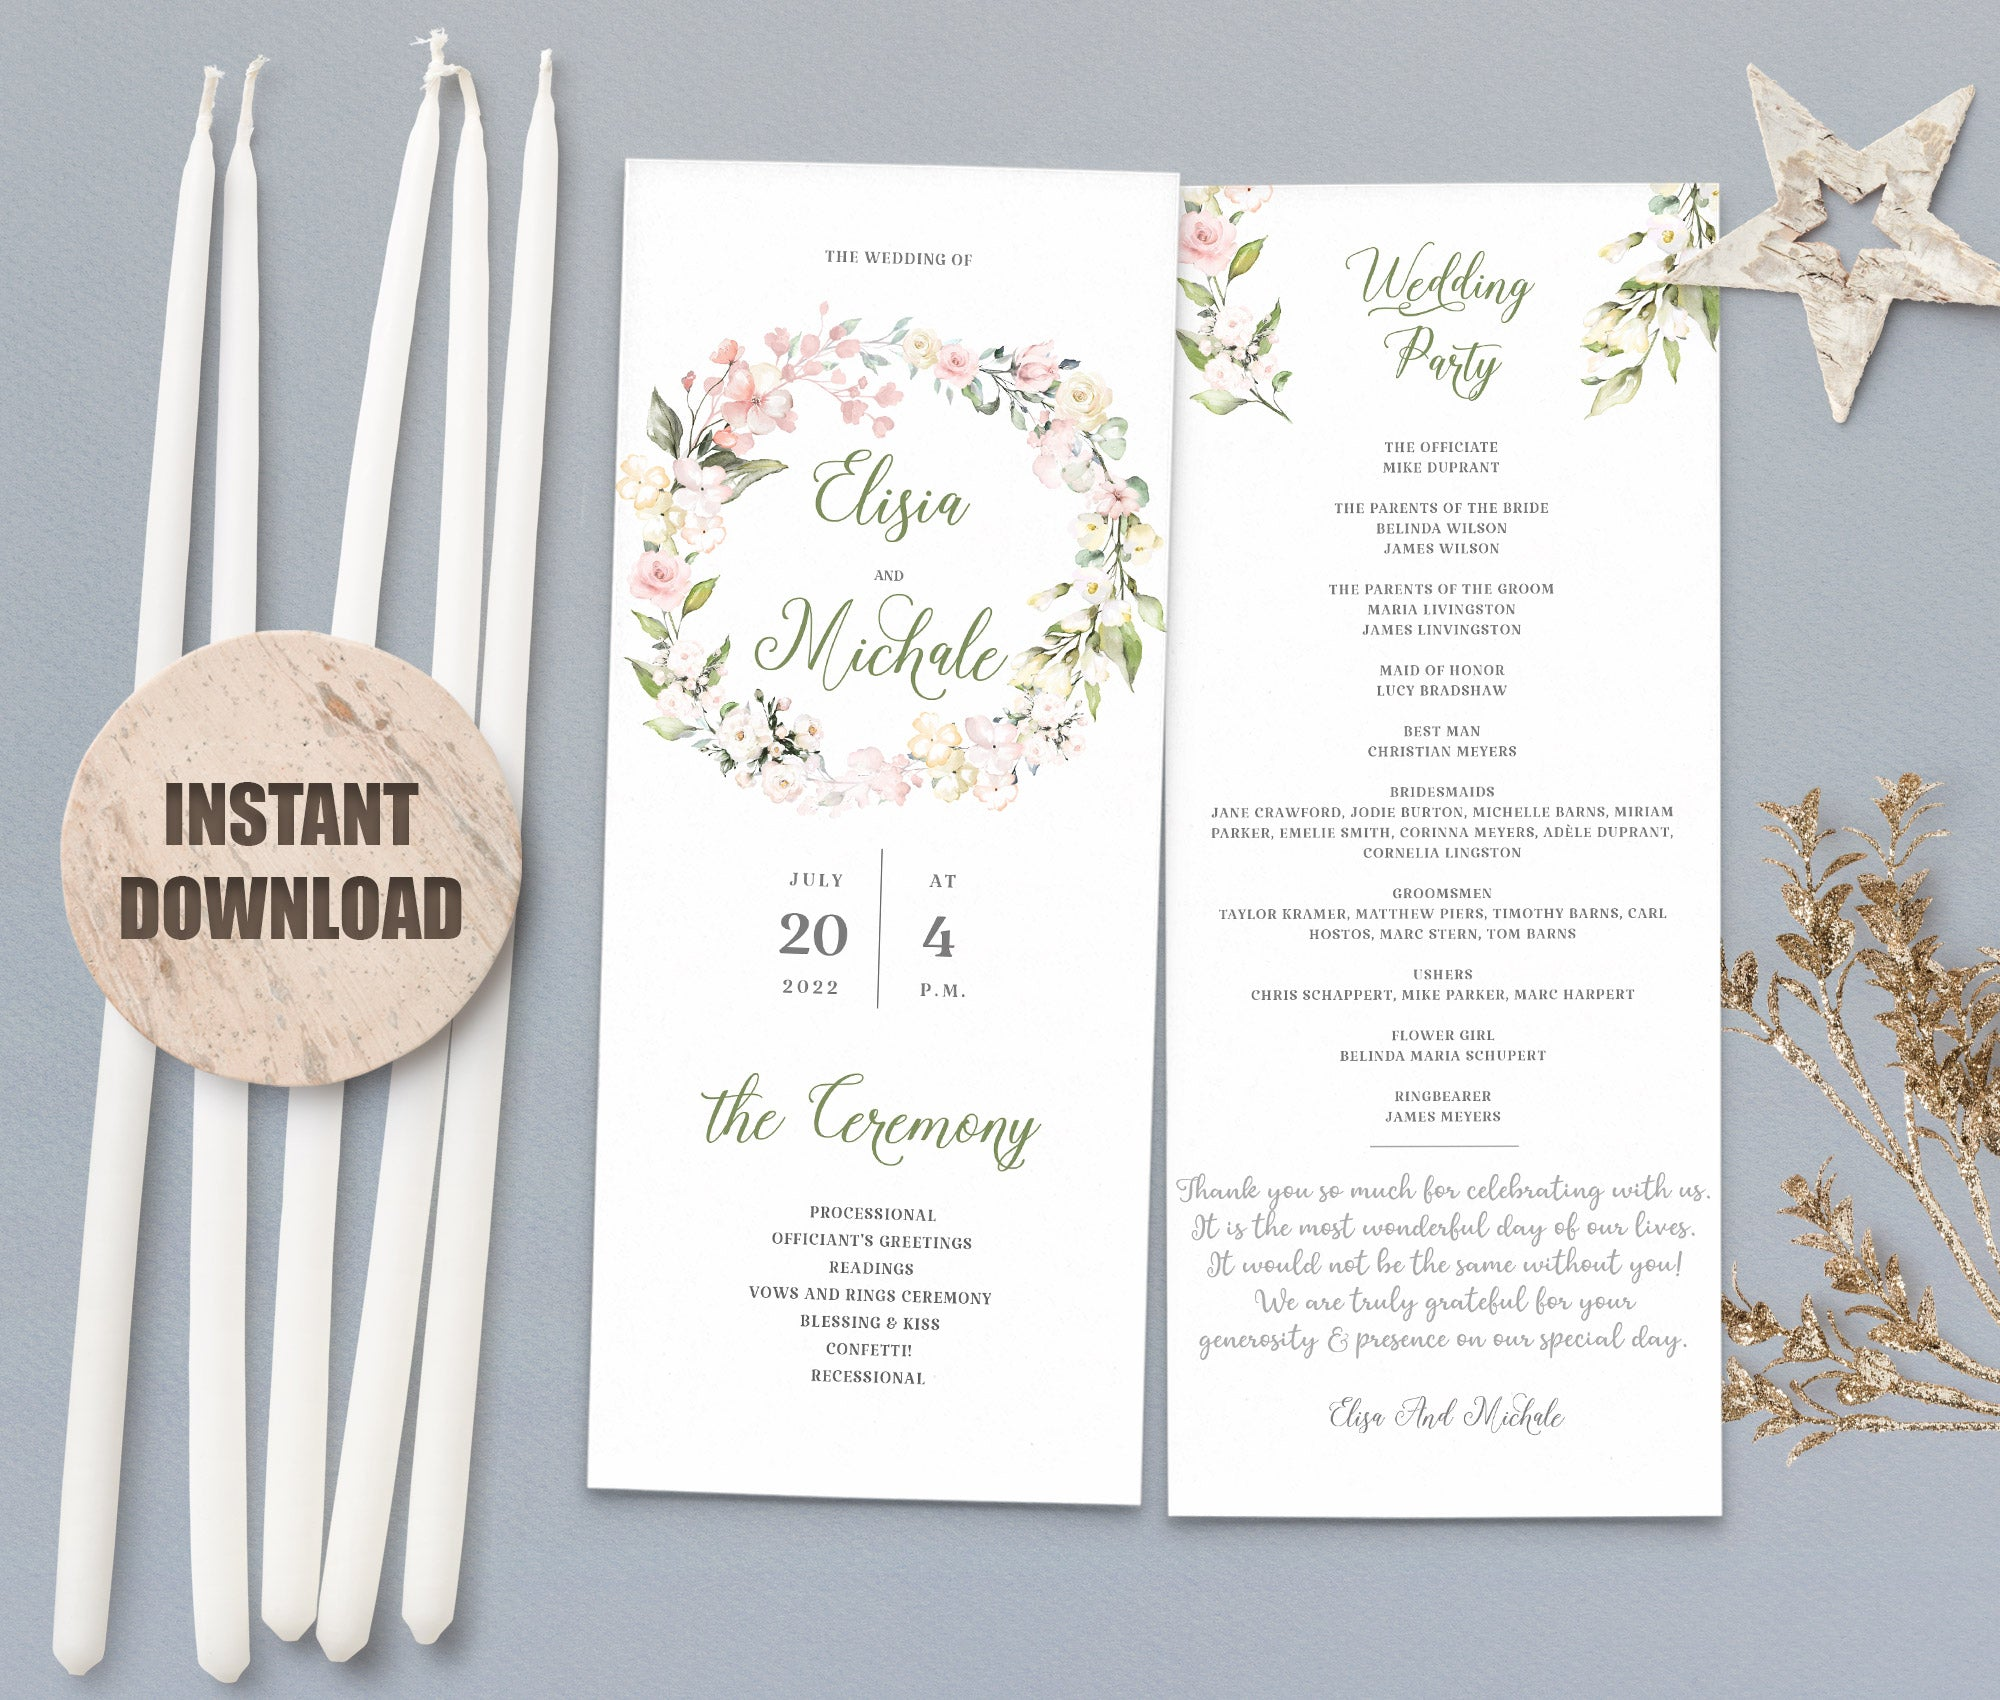 LOVAL Wedding Program set 6